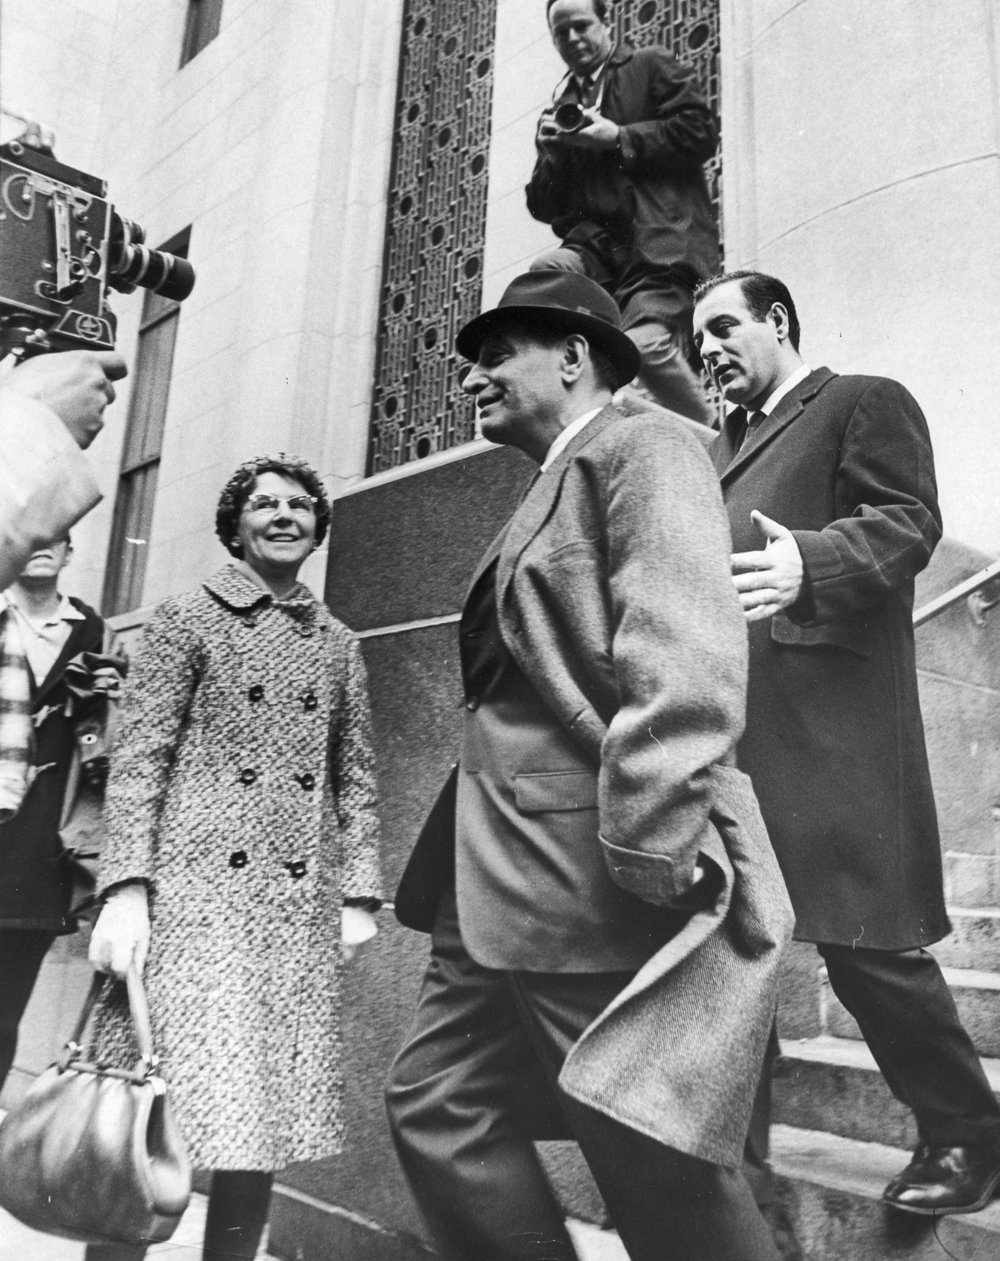 Raymond Patriarca, 59, leaves federal court in Boston in 1968. Courtesy of The Providence Journal.